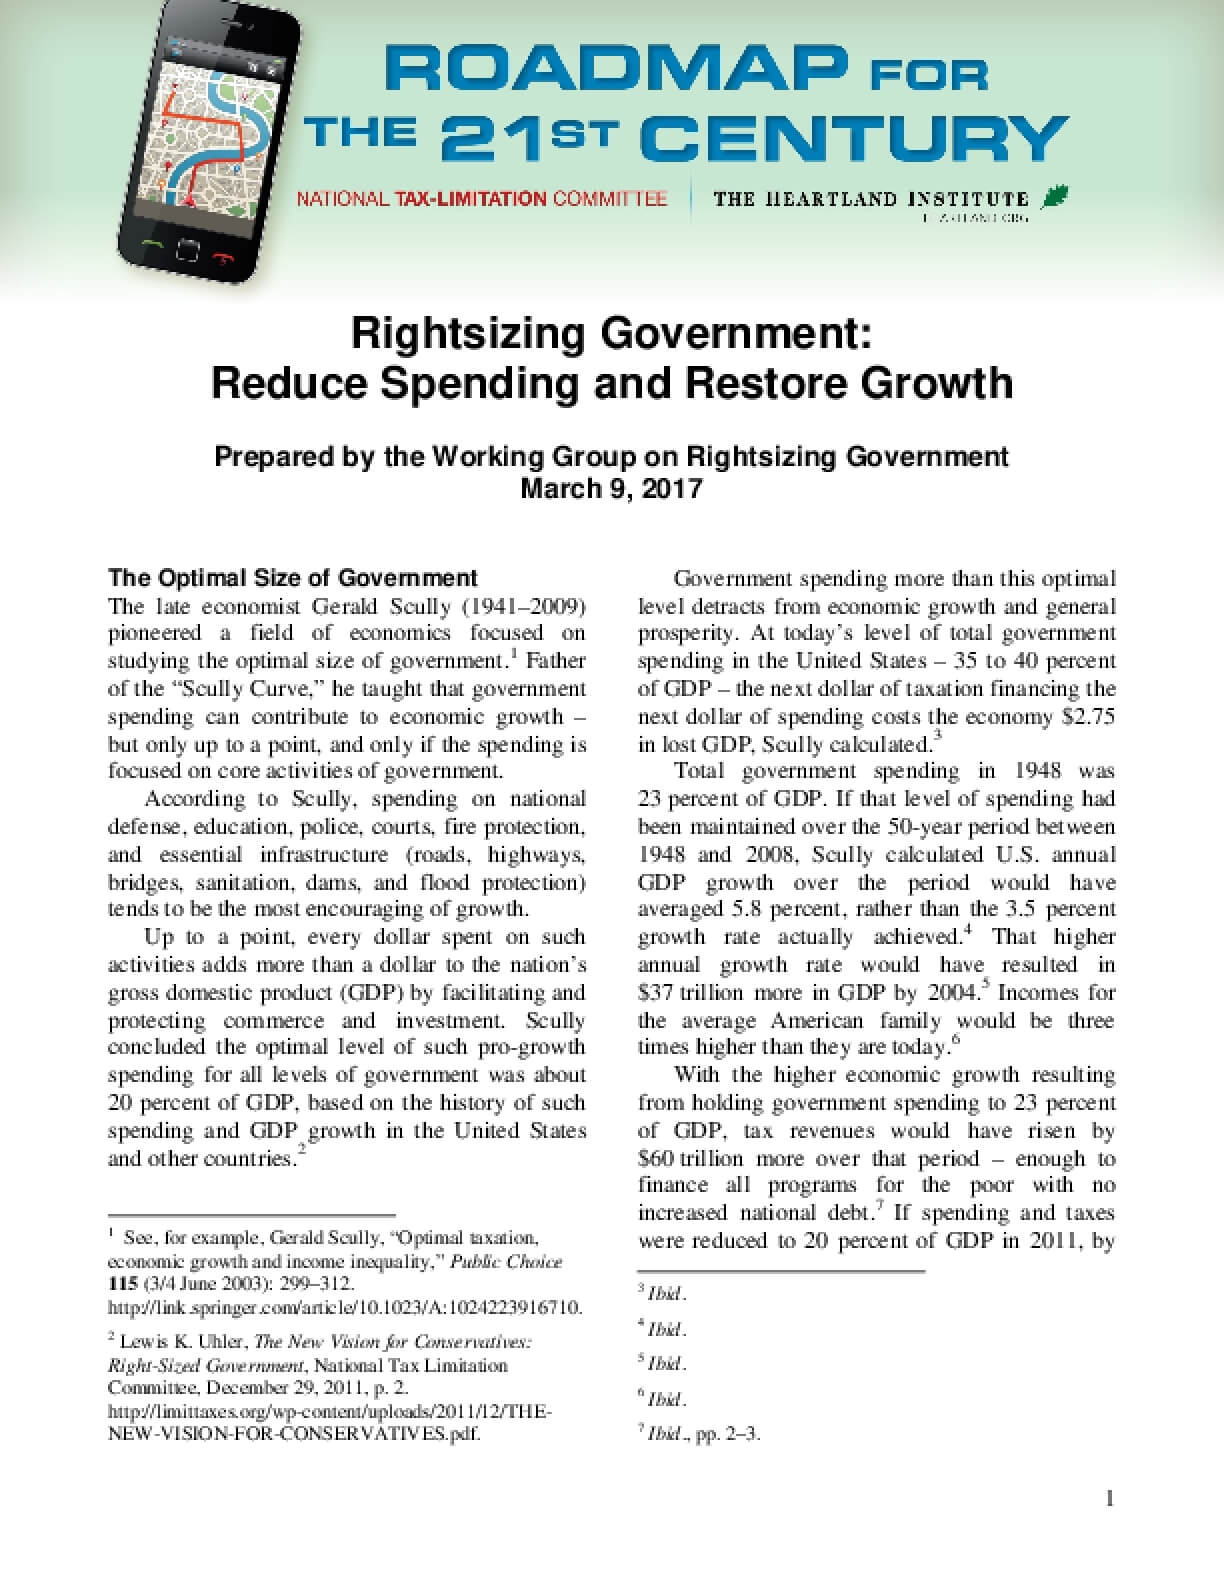 Roadmap for the 21st Century: Rightsizing Government